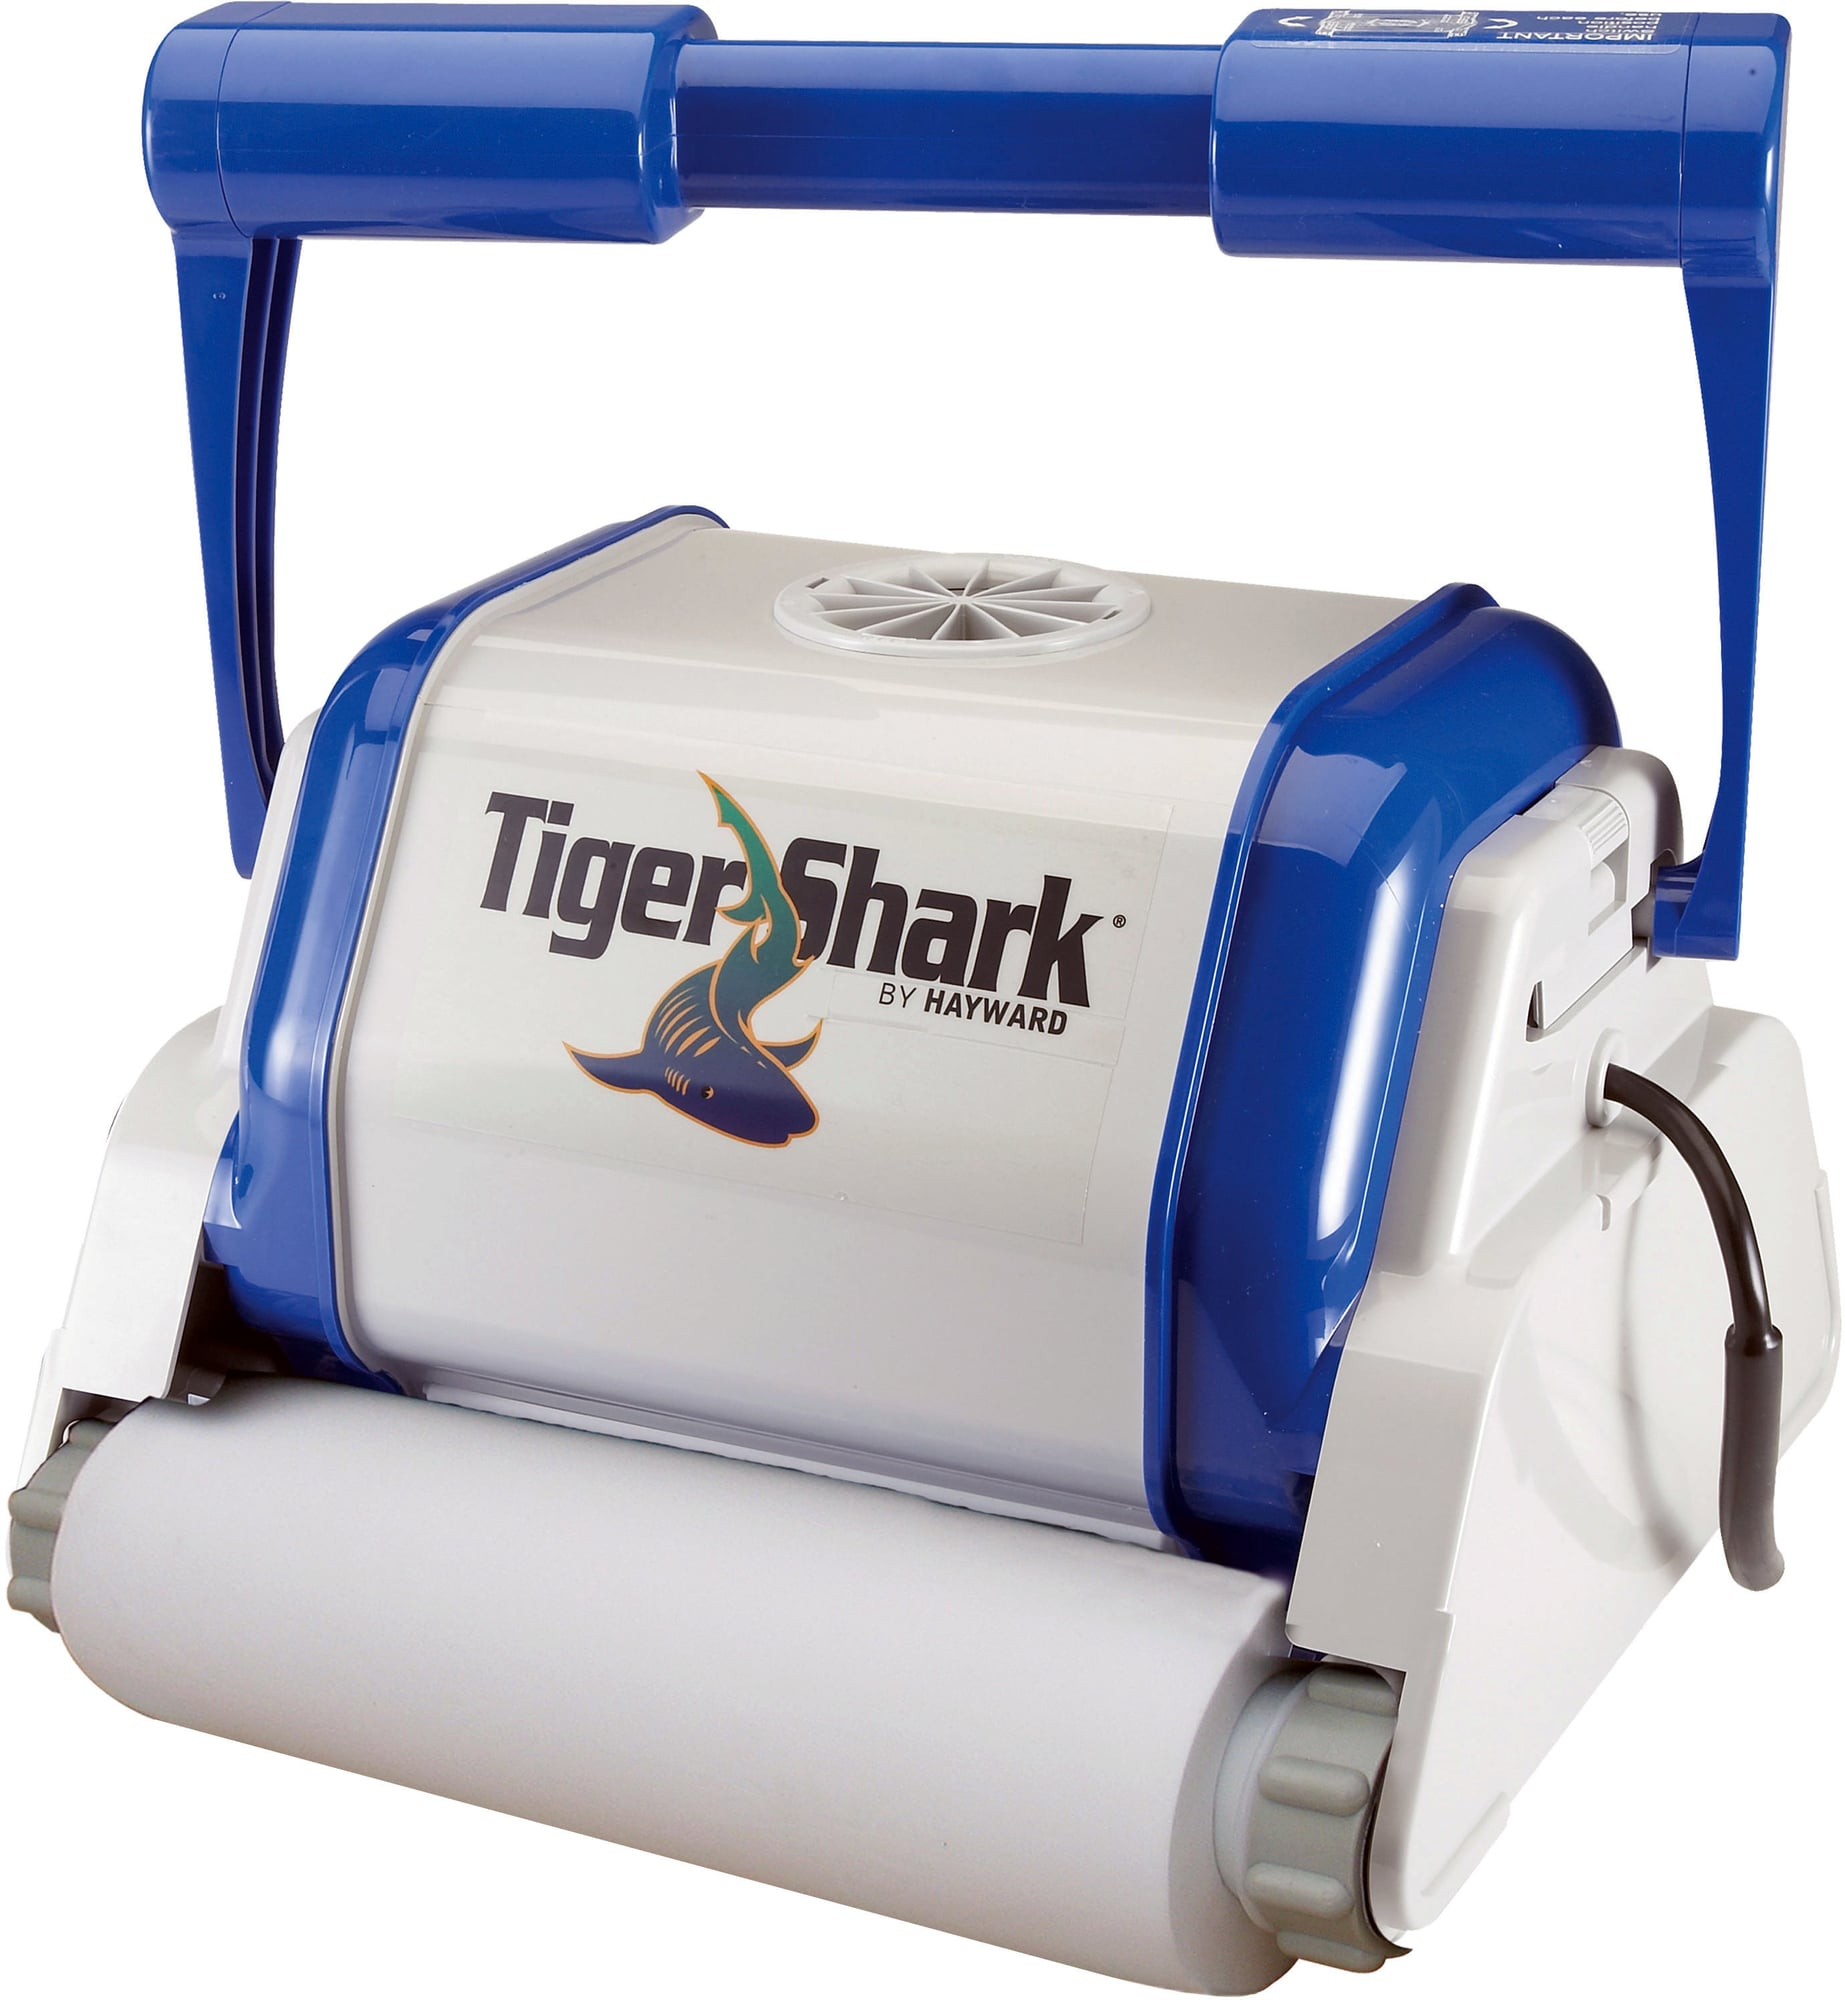 Pool Bodensauger Steinbach Steinbach Bodenreiniger Tiger Shark Mit Caddy Pools Shop